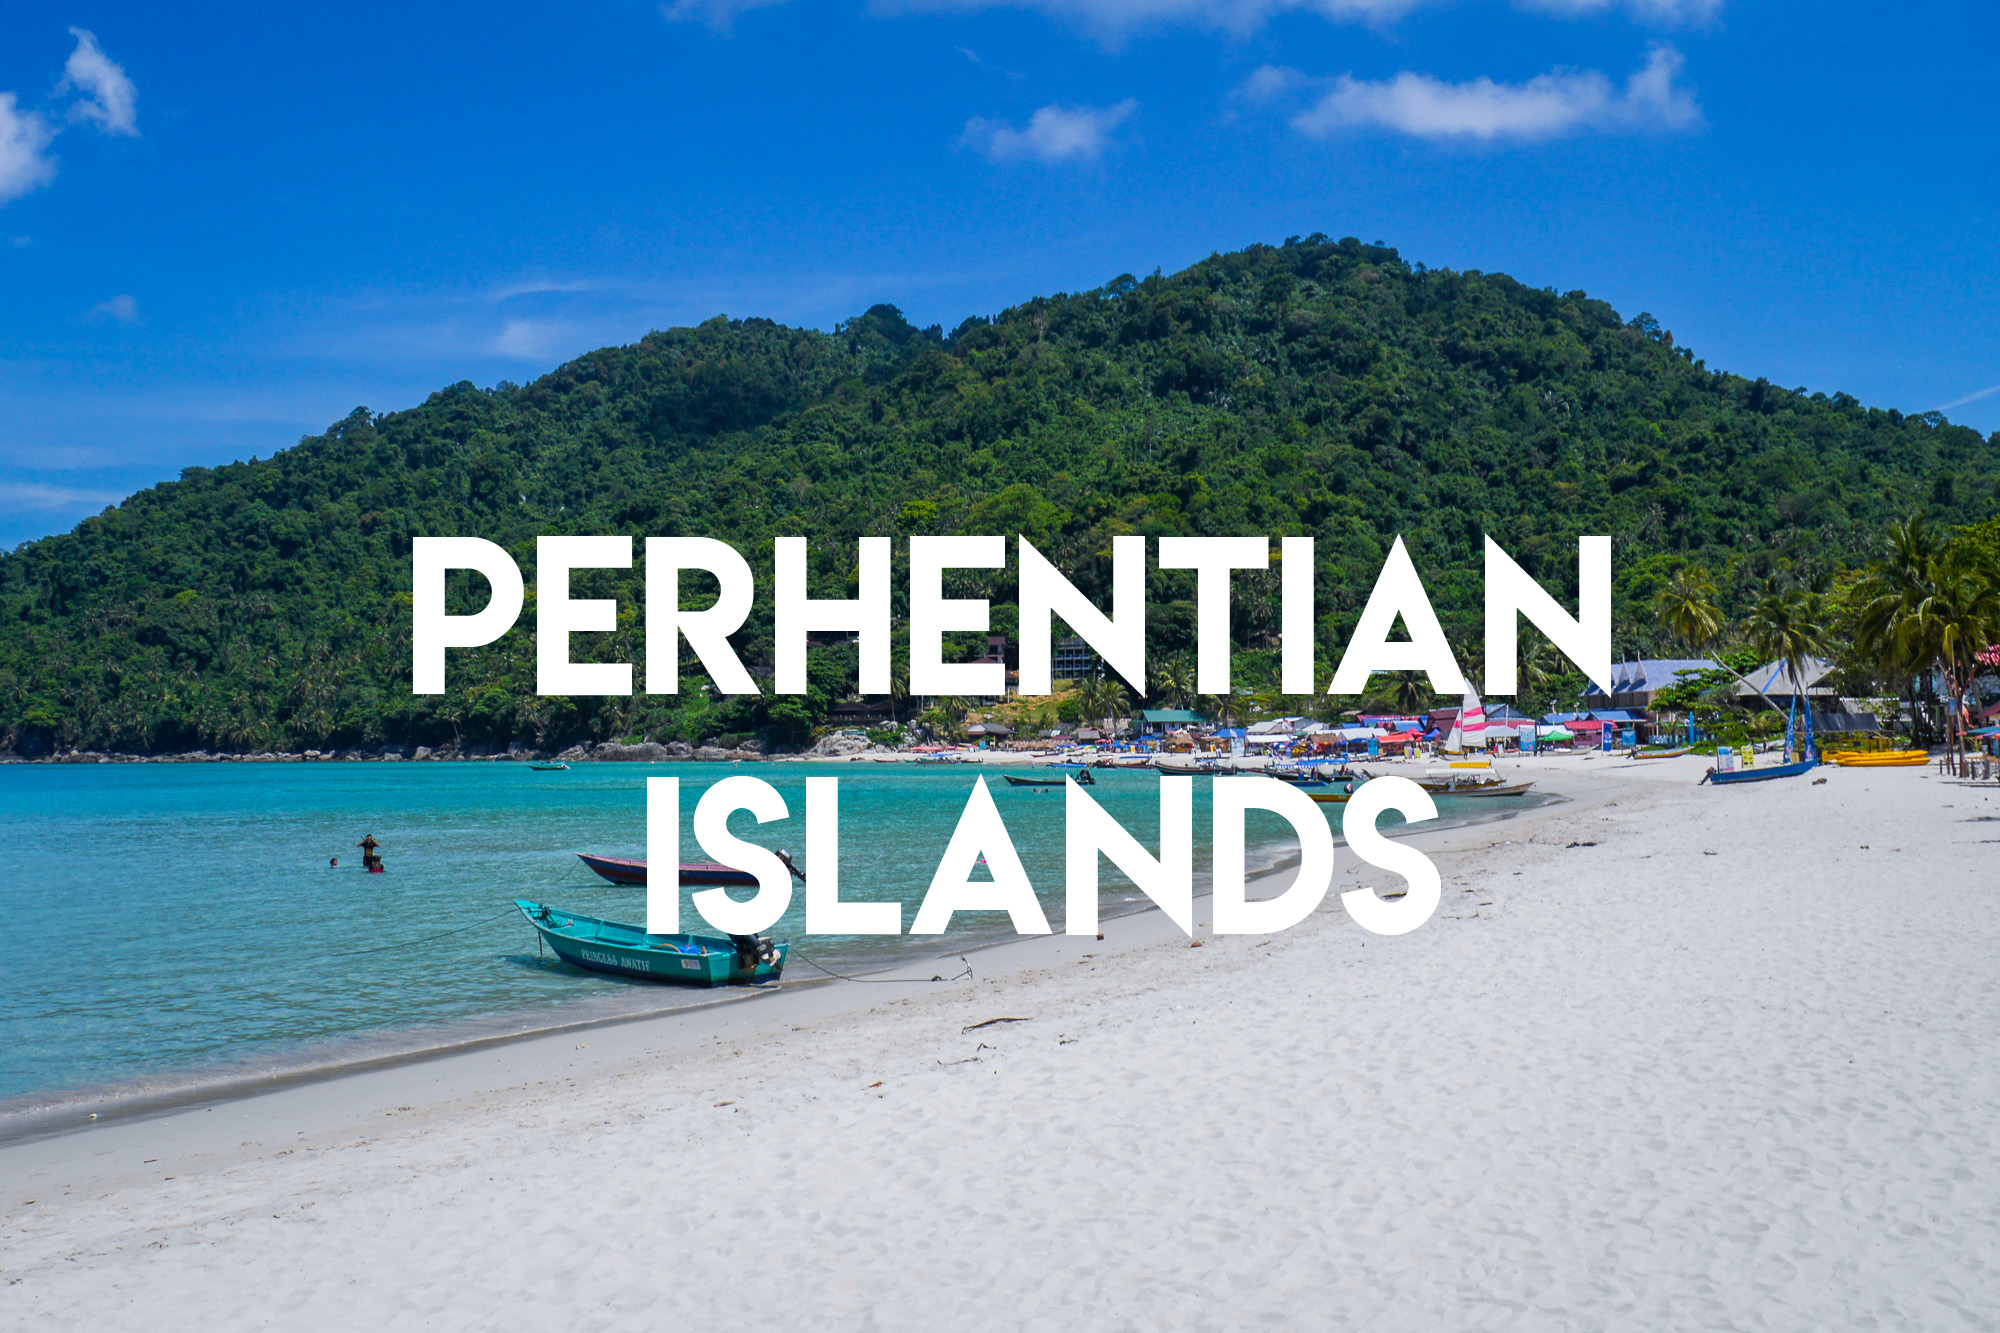 Perhentian Islands Tropical Paradise Found